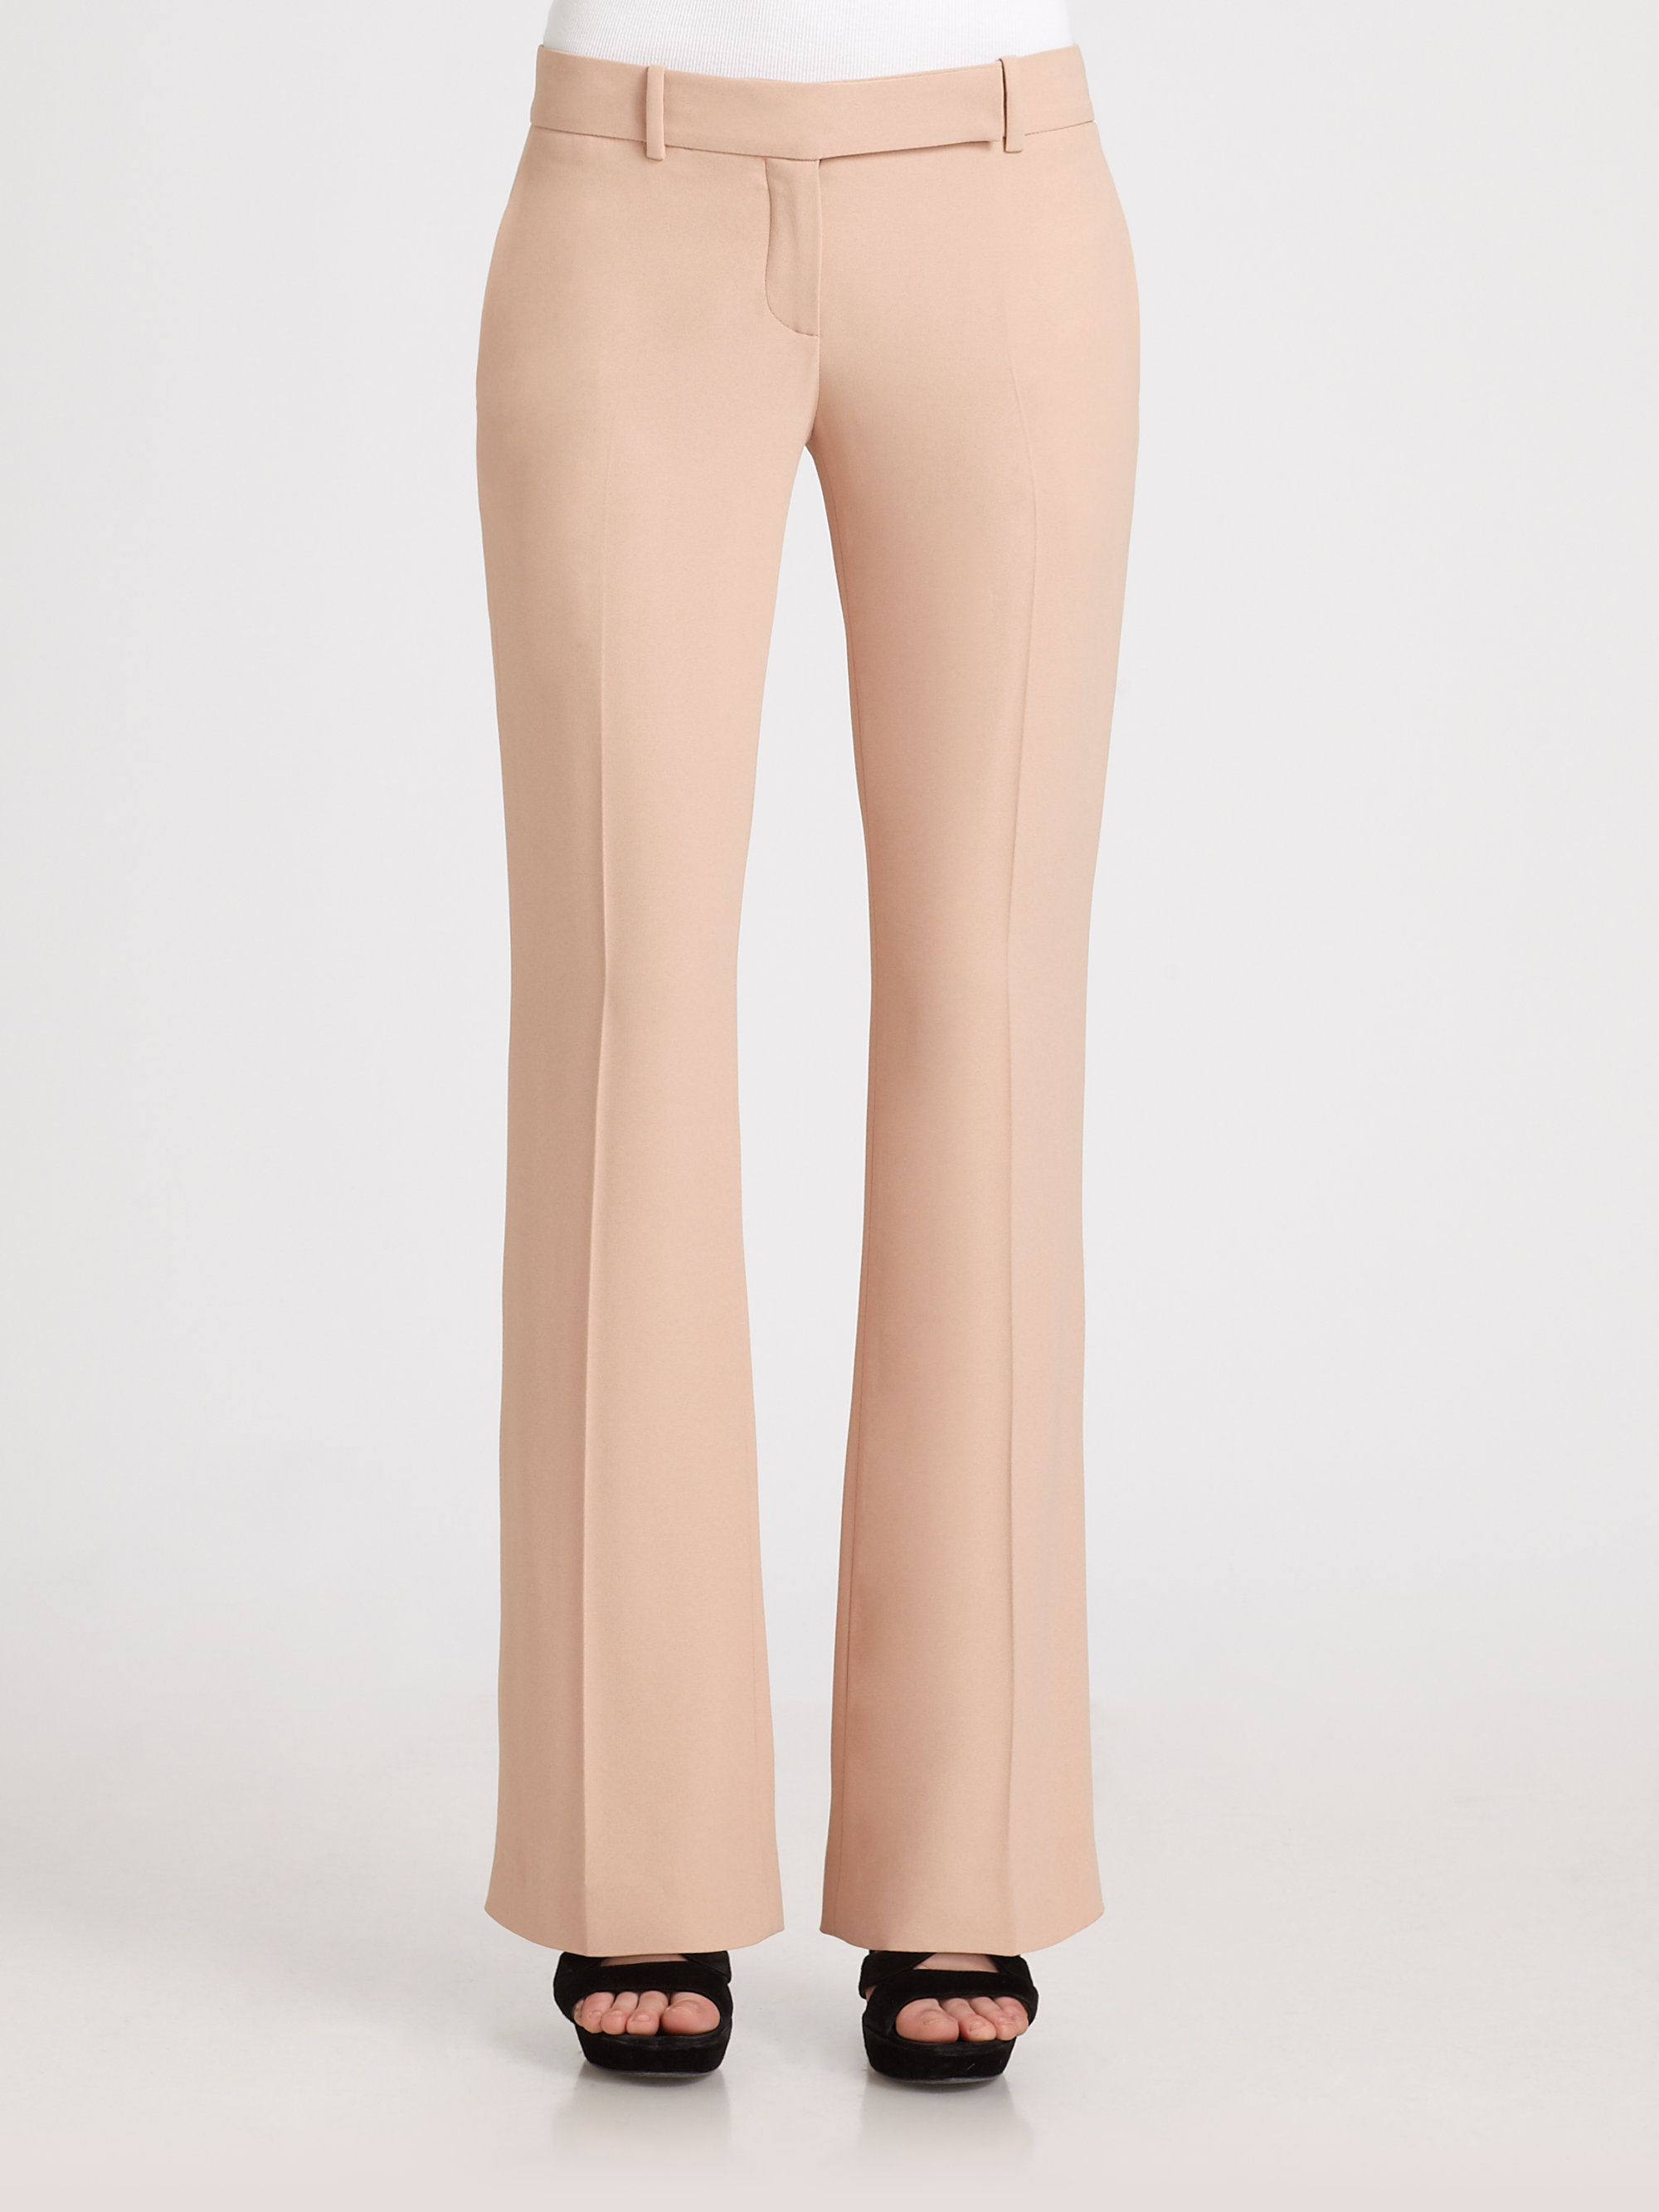 Alexander mcqueen Leaf Crepe Bootcut Trousers in Natural | Lyst